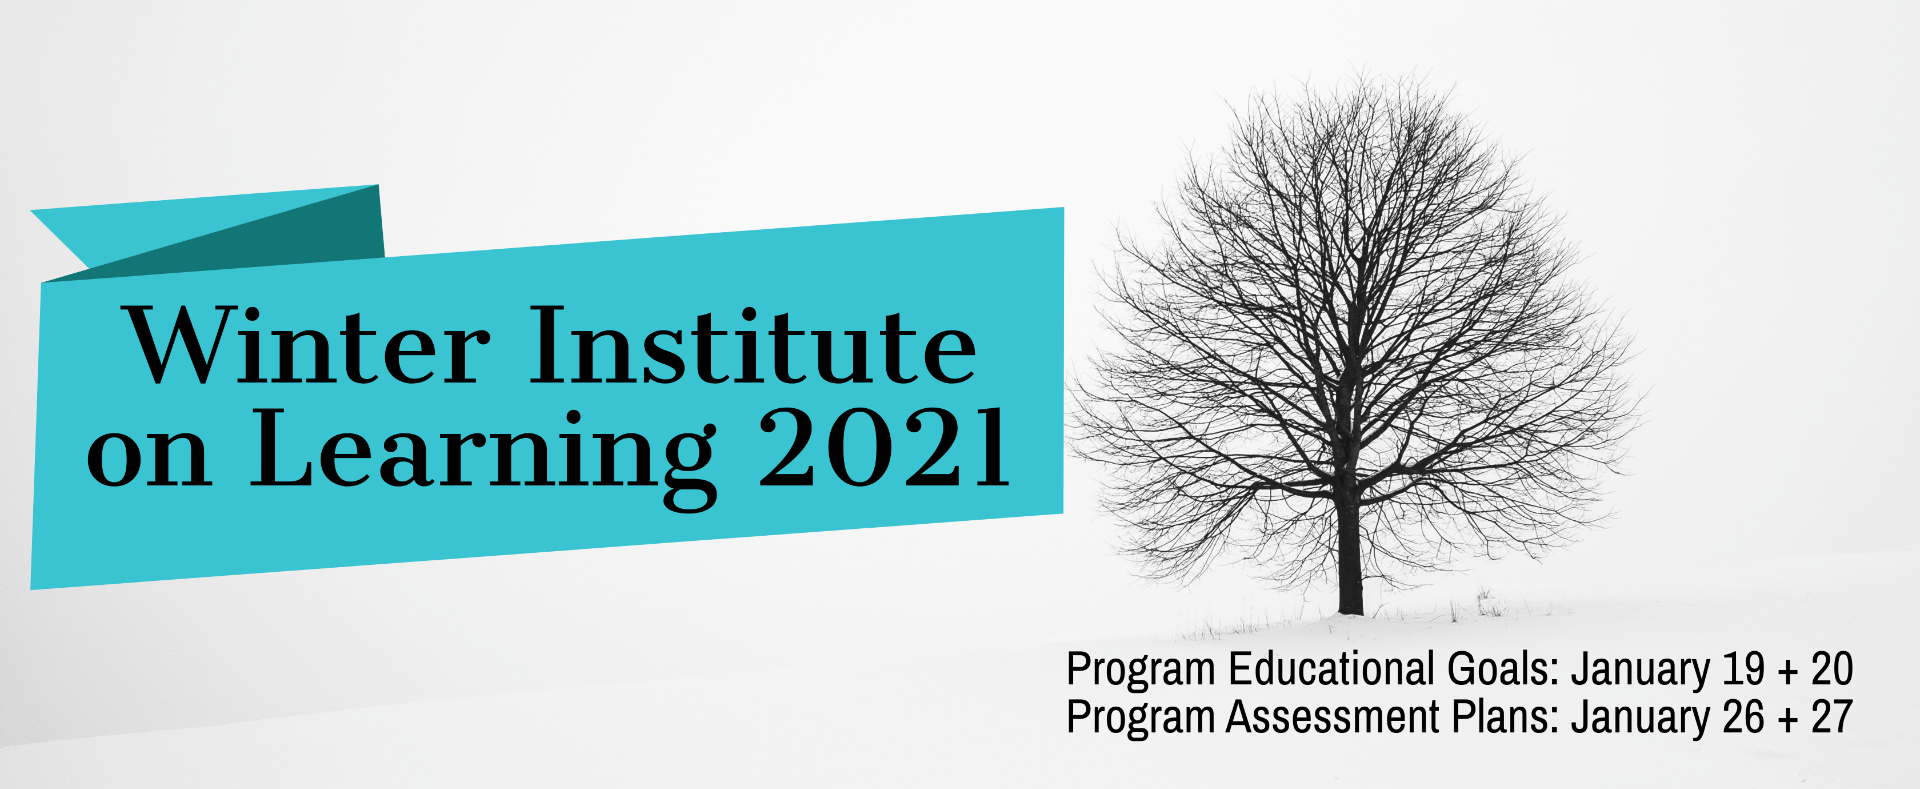 Winter Institute on Learning 2021